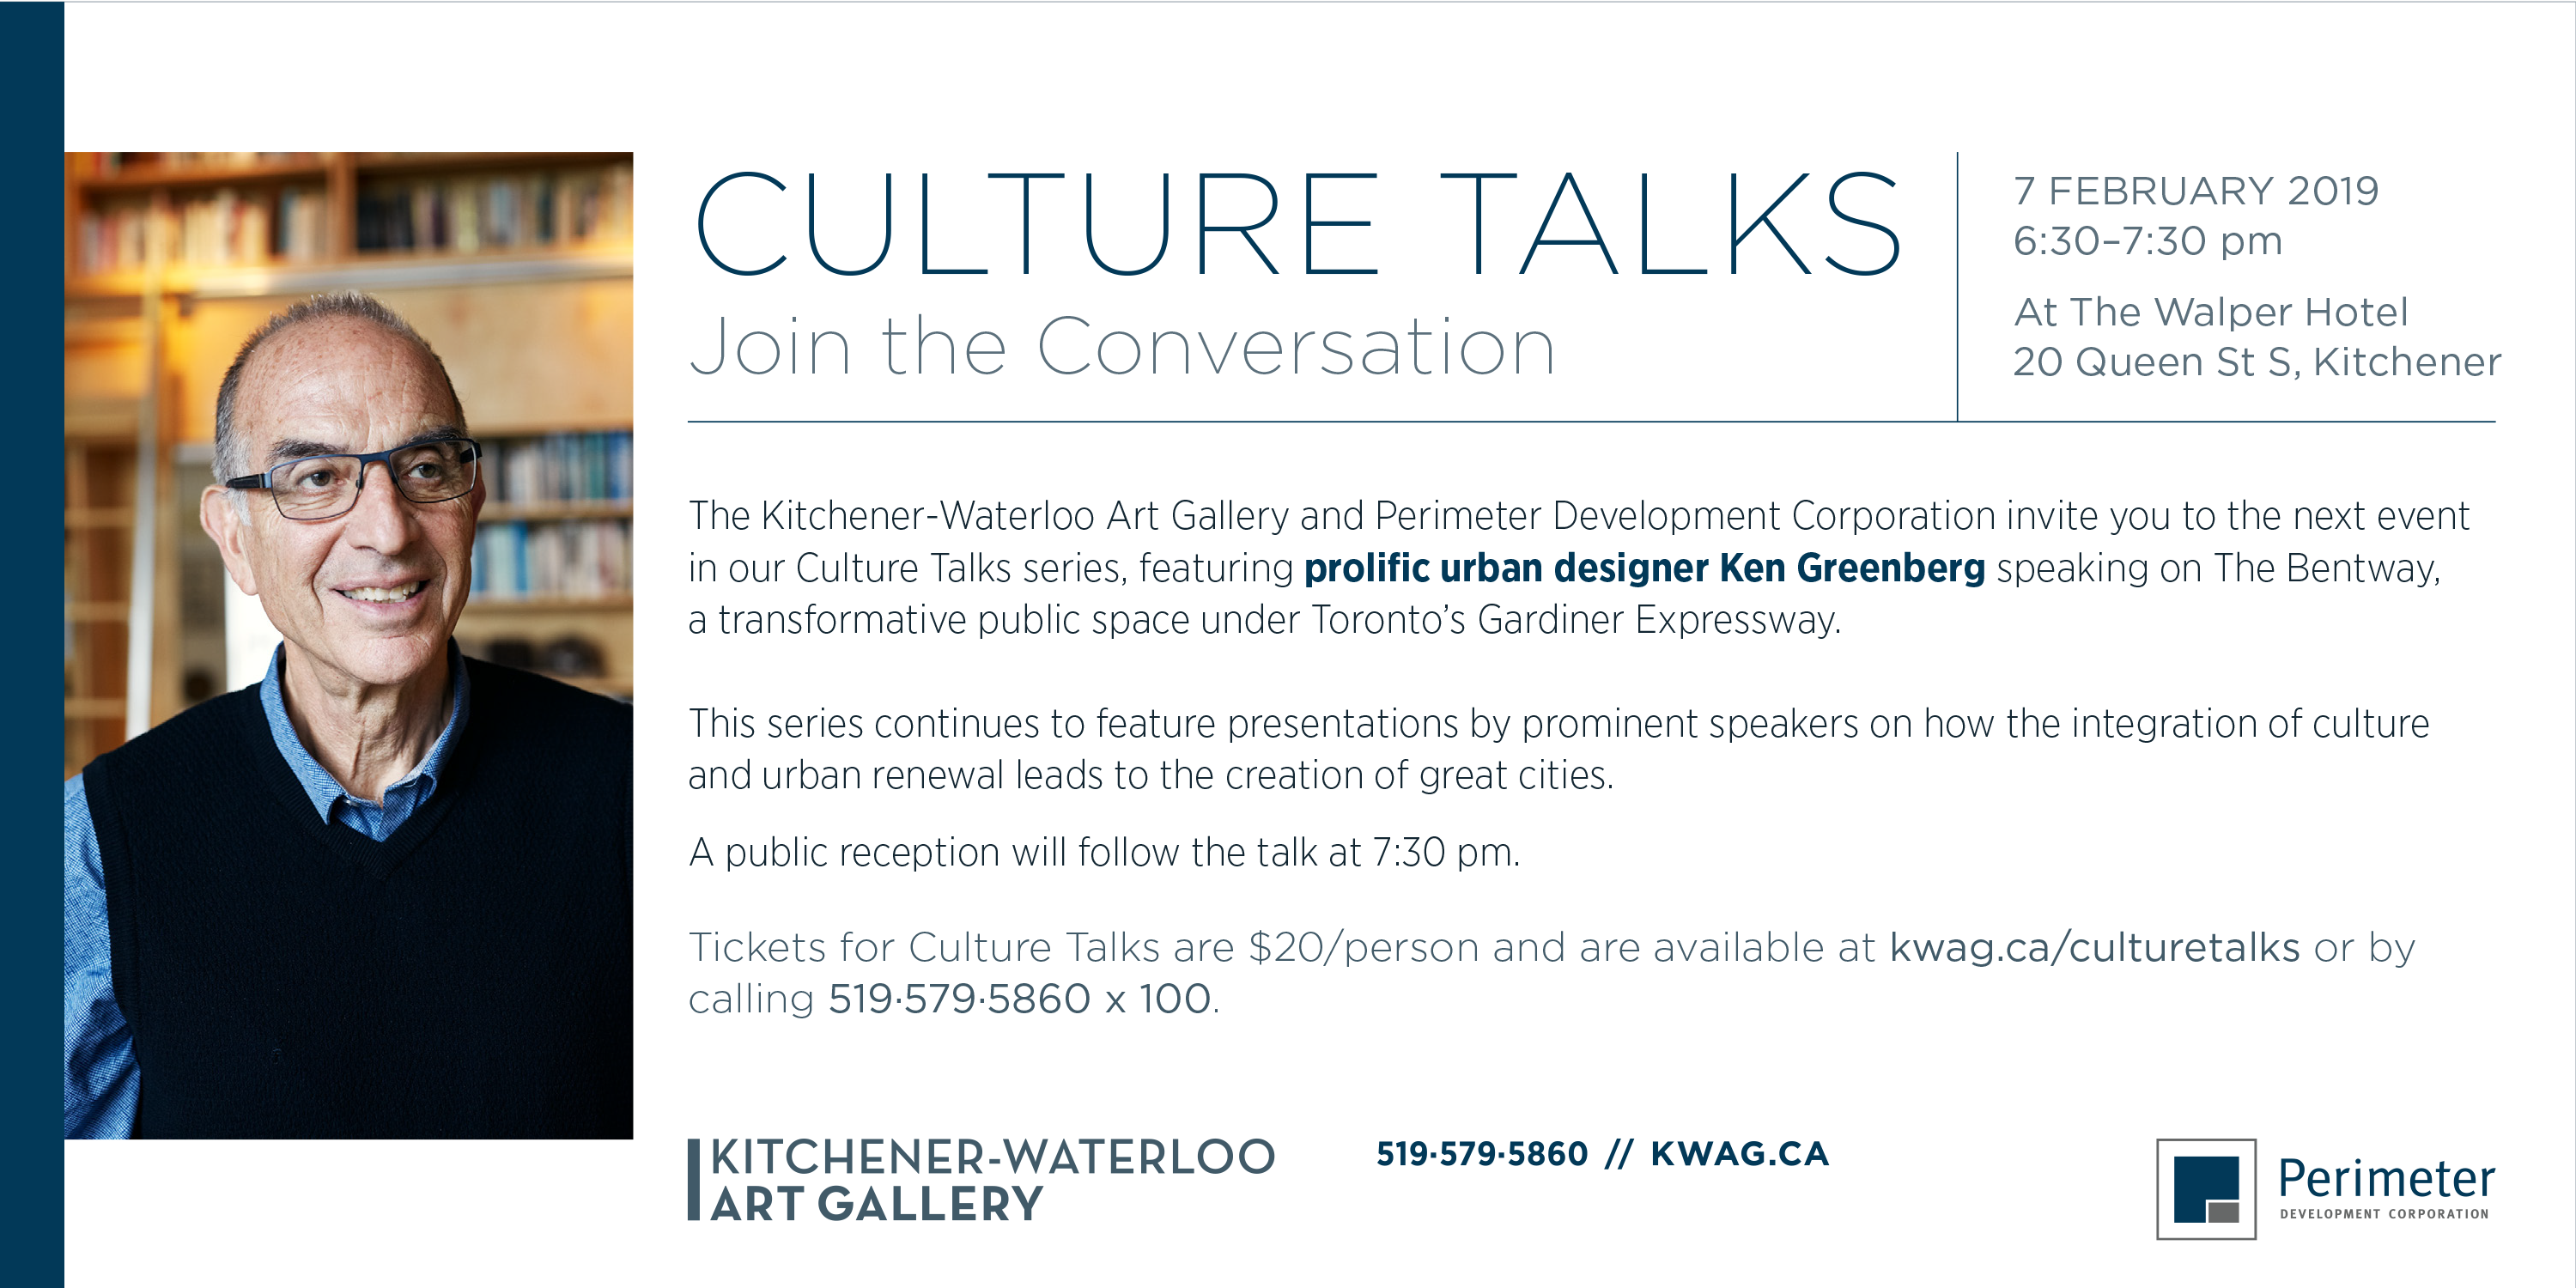 CULTURE TALKS Join the Conversation